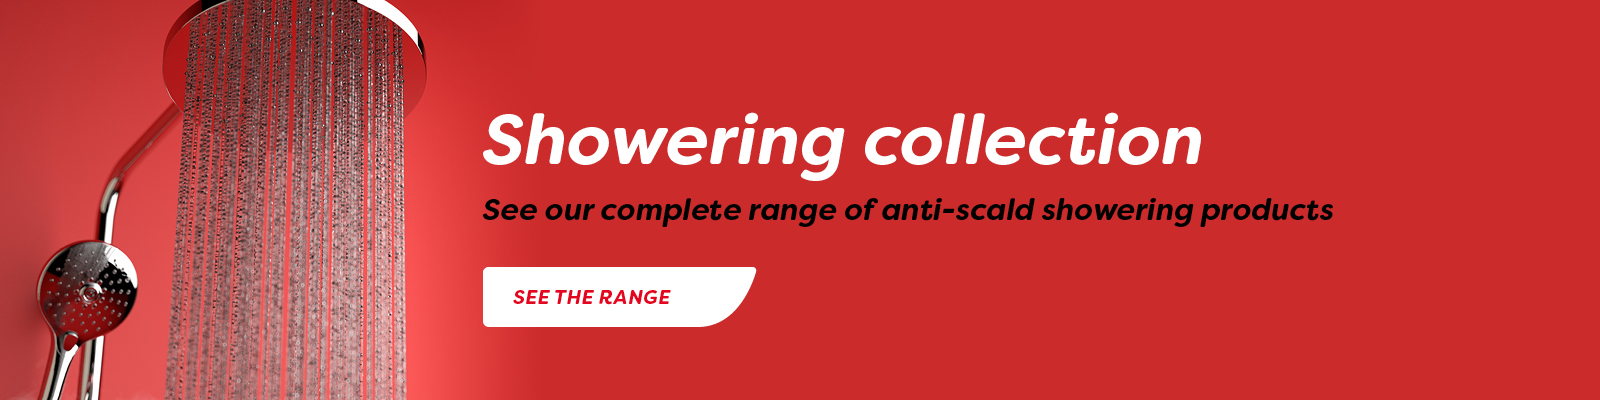 Showering collection see our complete range of anti-scald showering products